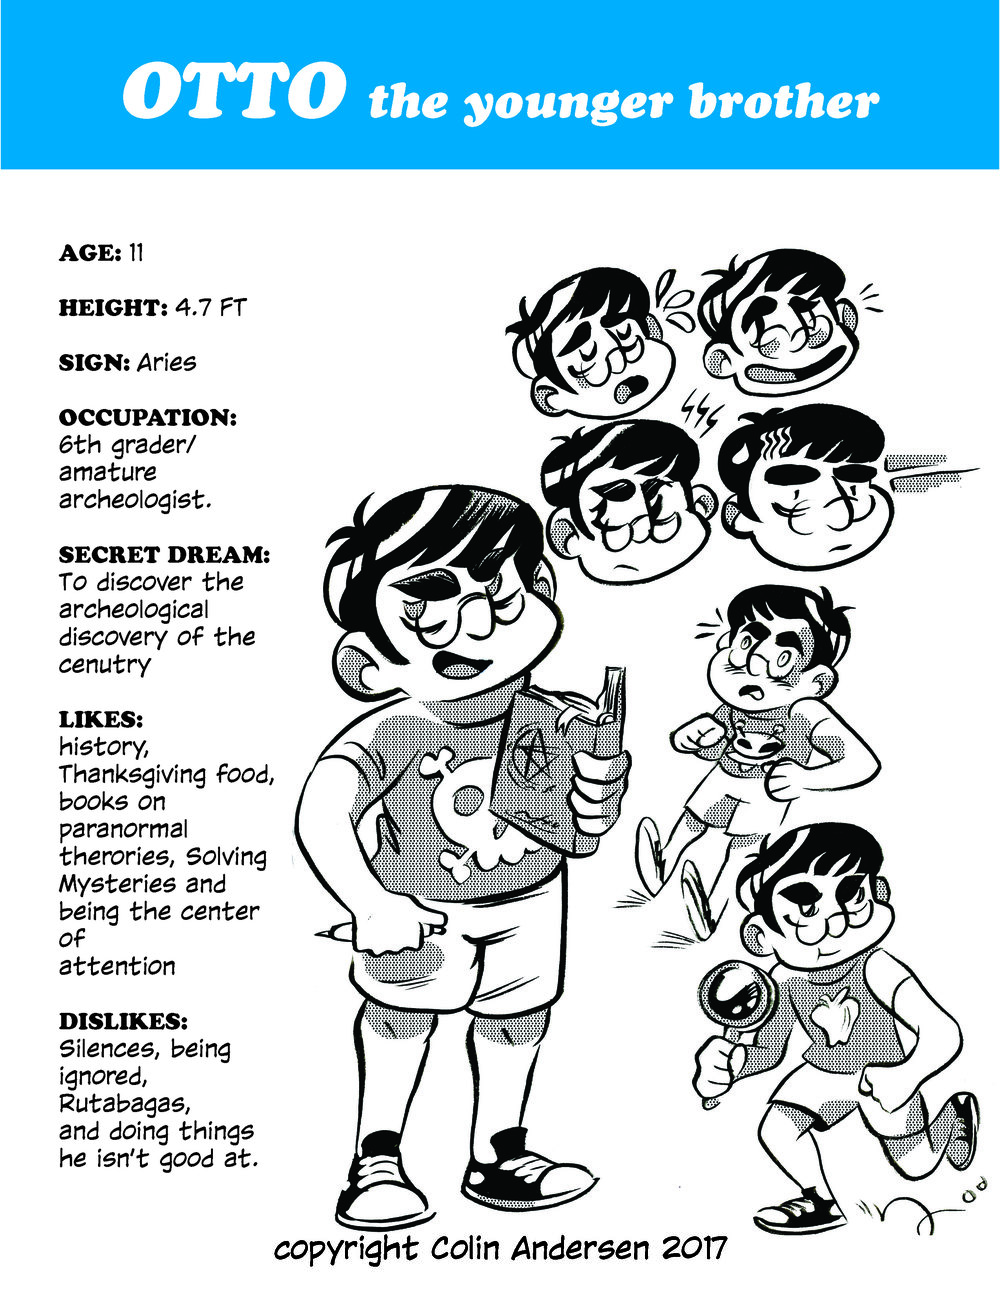 Character sheet by Colin Andersen.